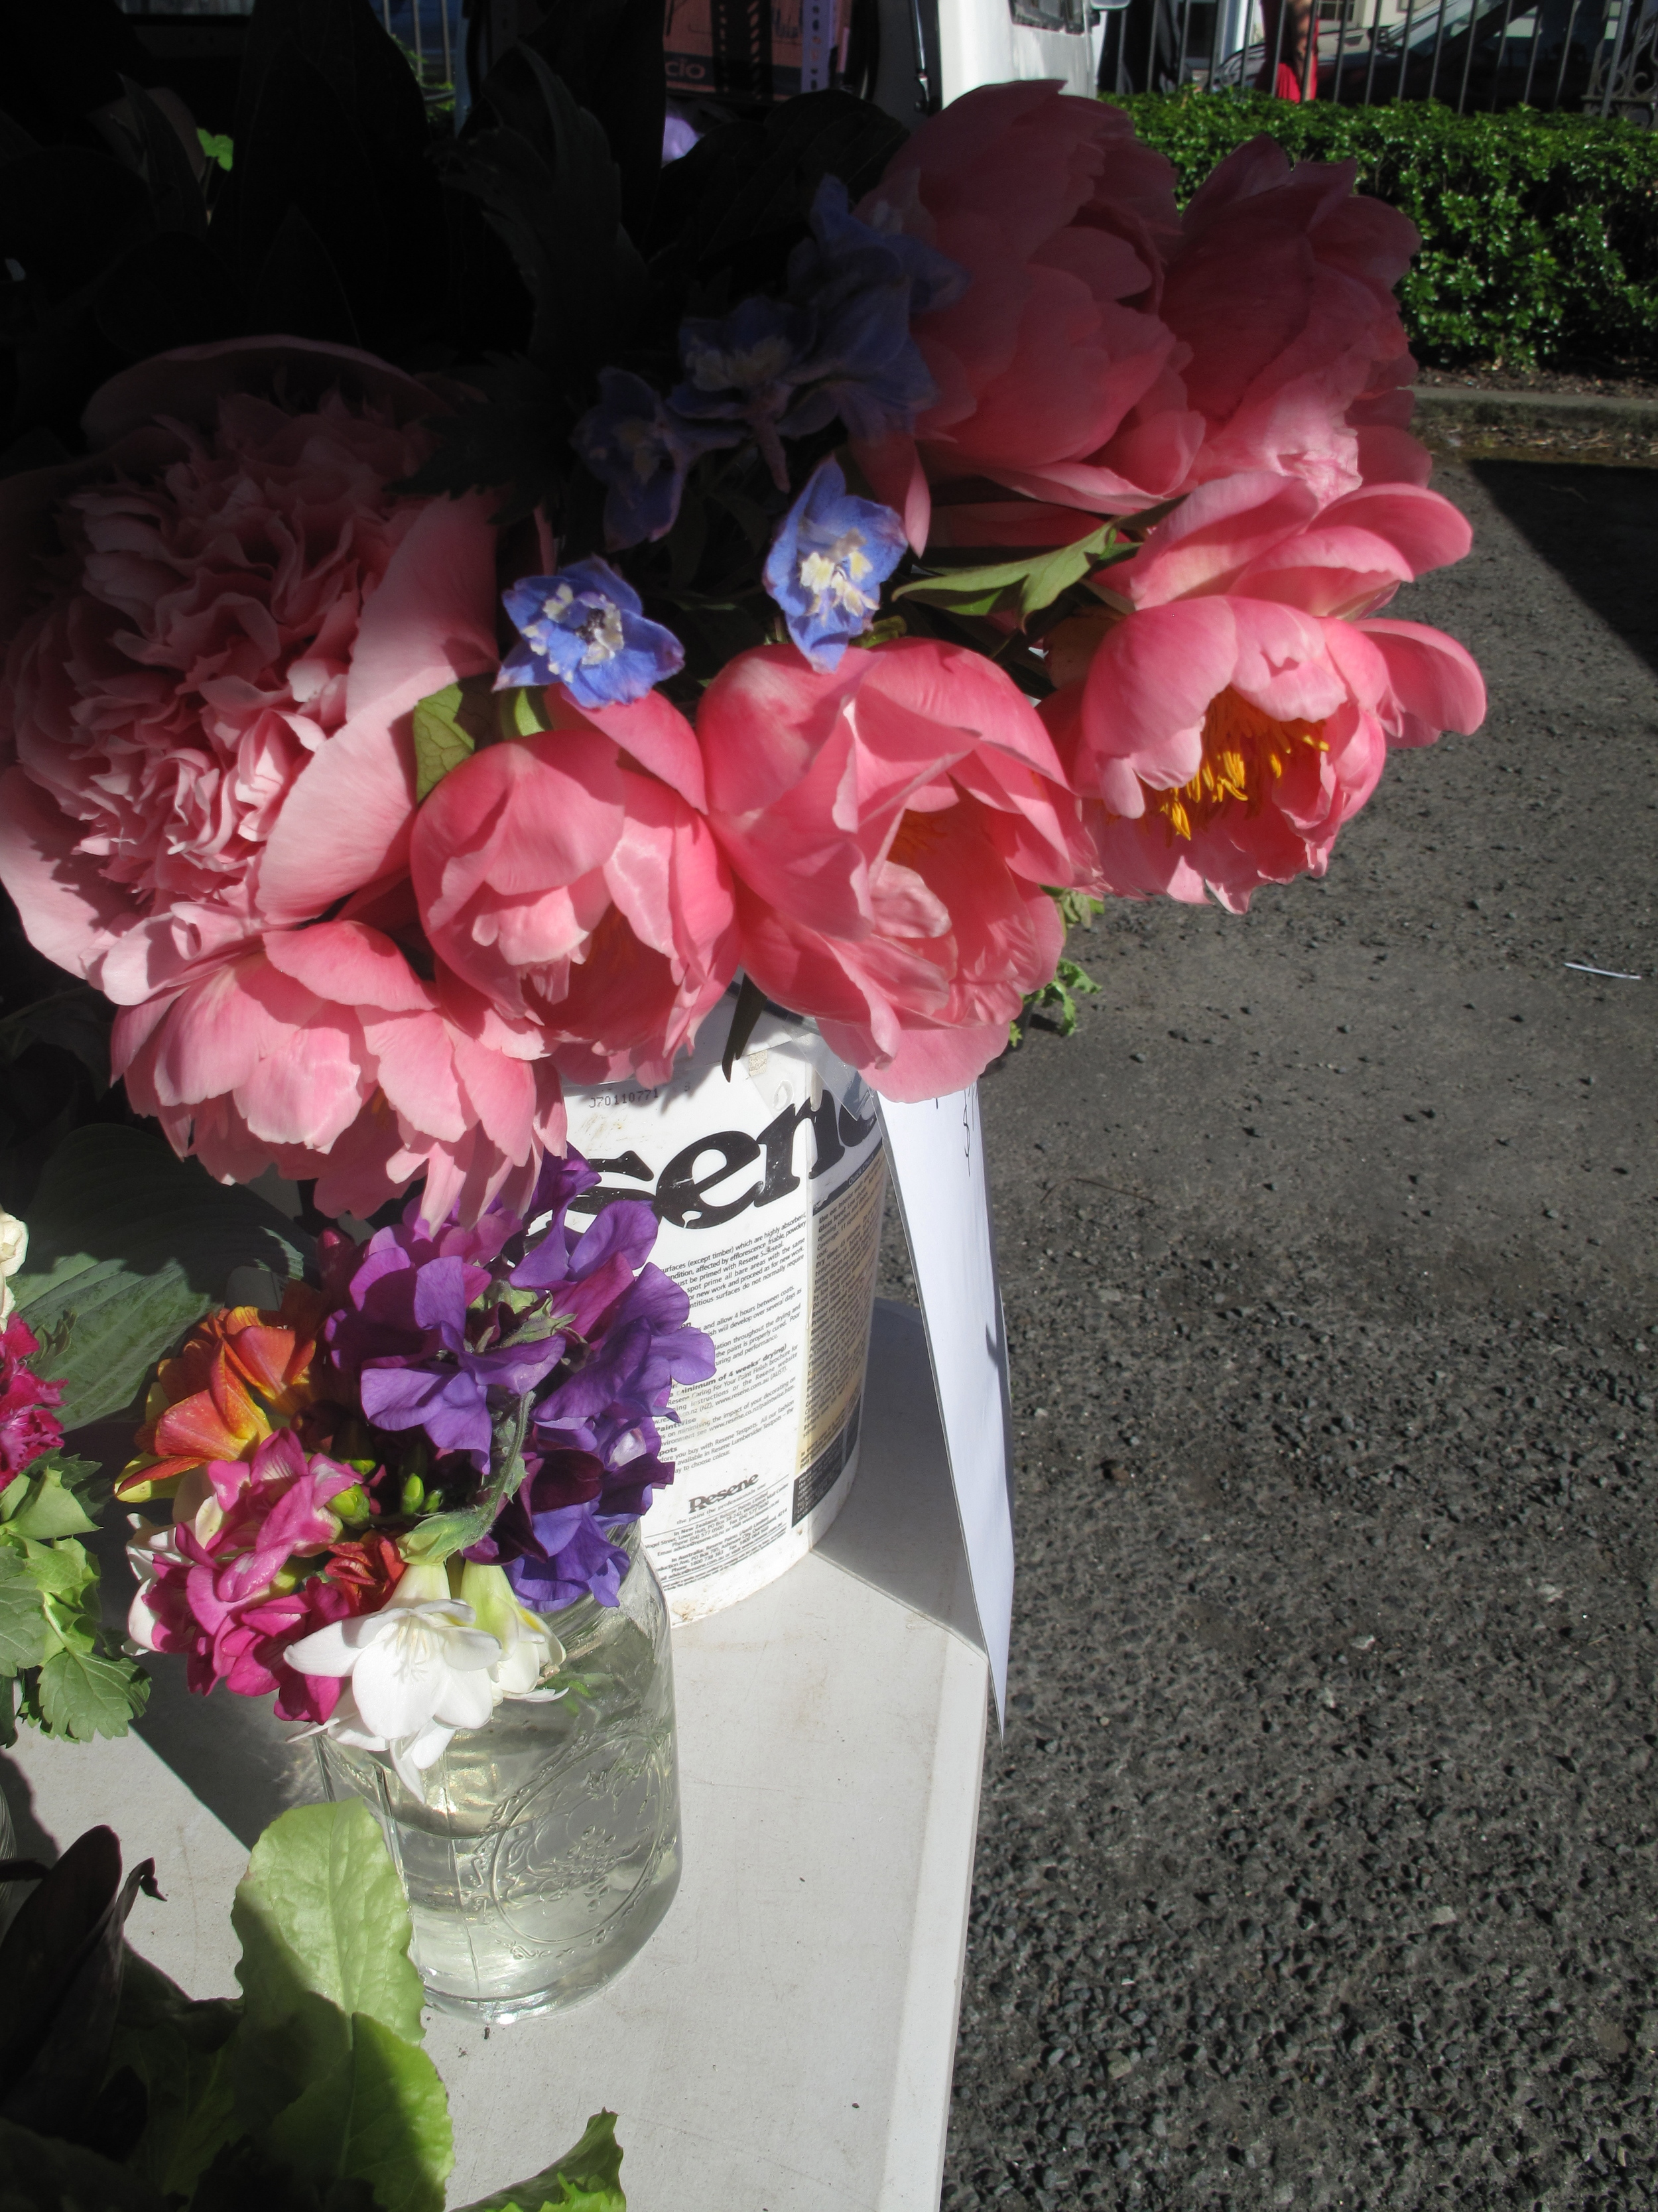 Flowers by the bundle at the farmer's market